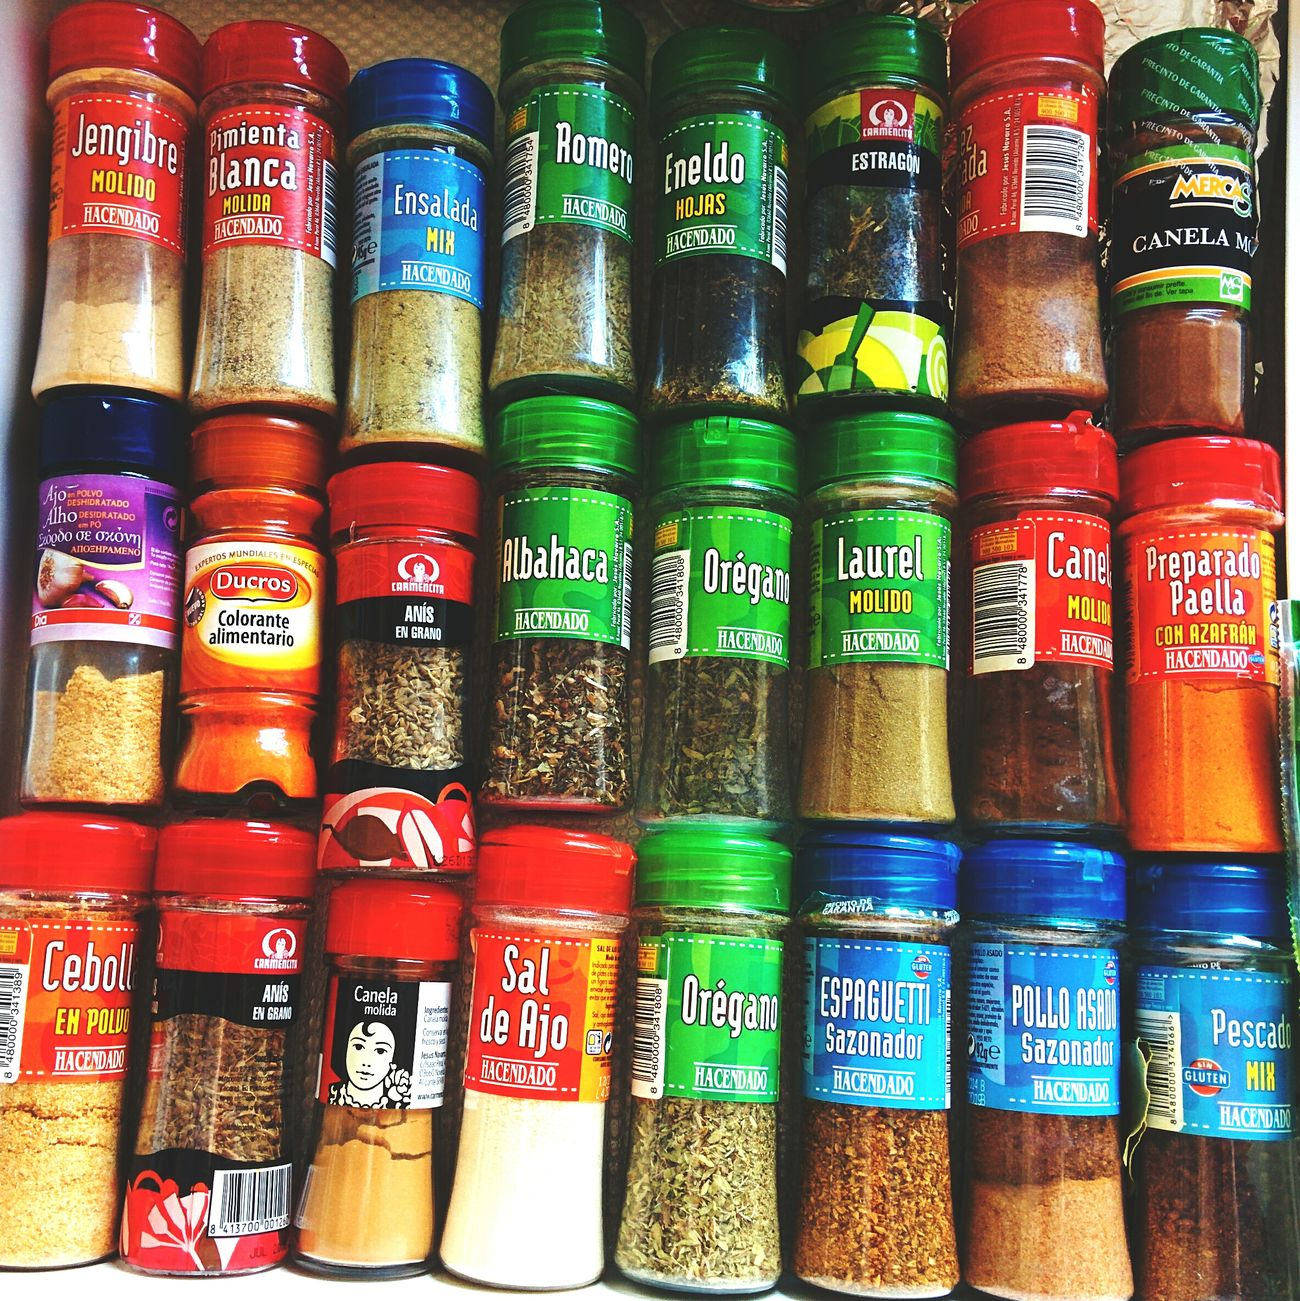 Kitchen Art Kitchen Life Kitchener Cookinglight Divine Spices Thespicesomg Spicesworld Ordinary Day Ordinaryphoto Nothing Out Of The Ordinary